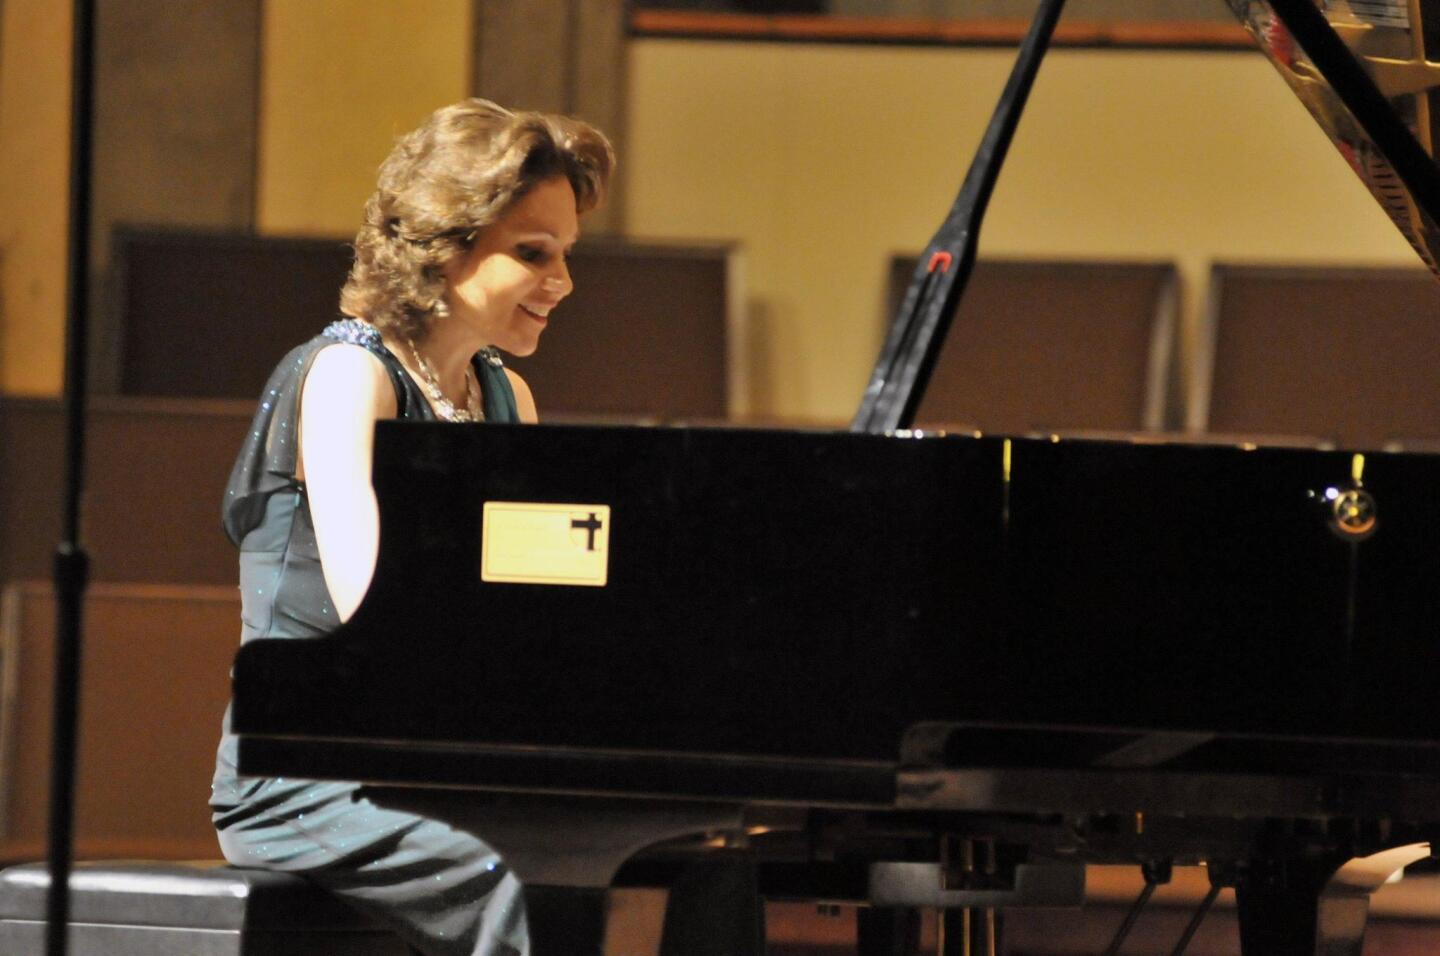 Pianist Alina Kiryayeva